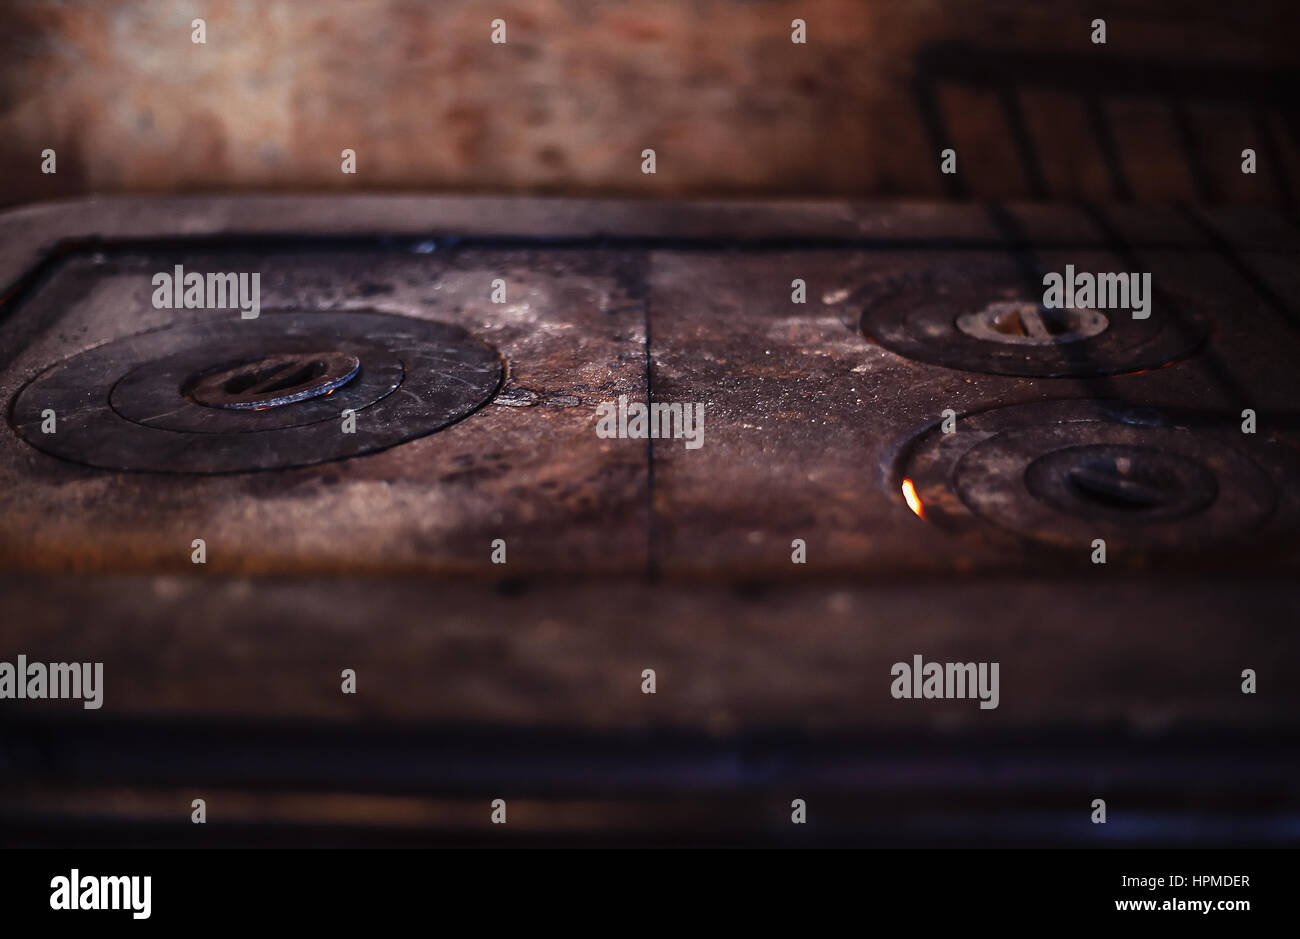 Closeup view of an old metal oven. - Stock Image